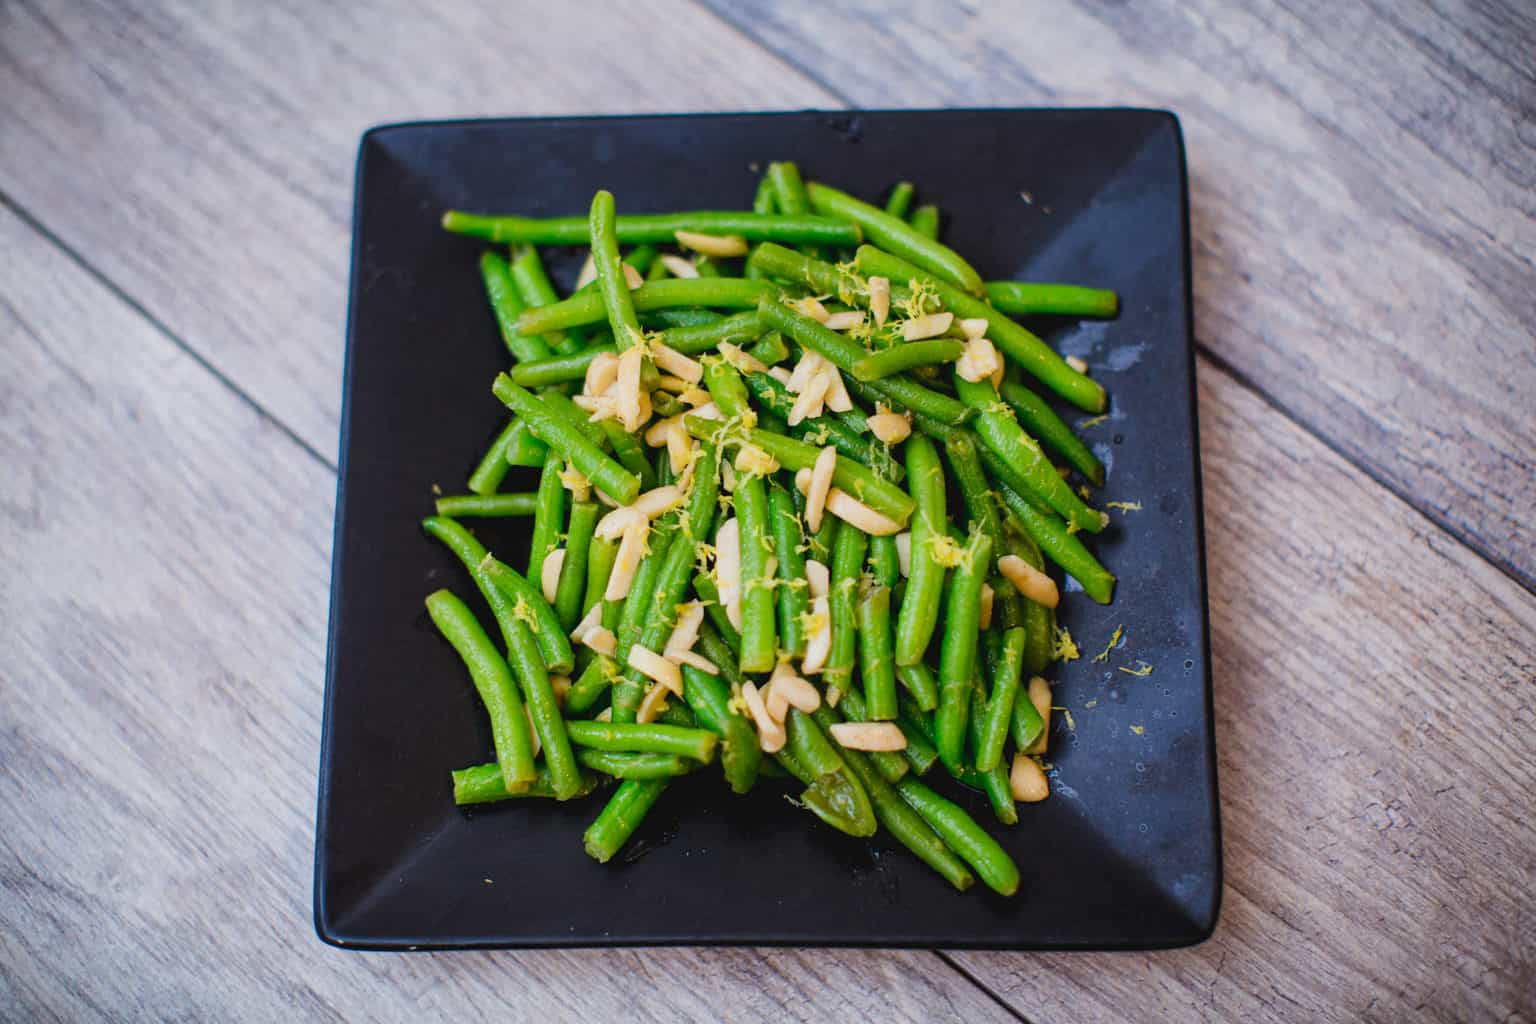 Simple green bean salad served on a plate